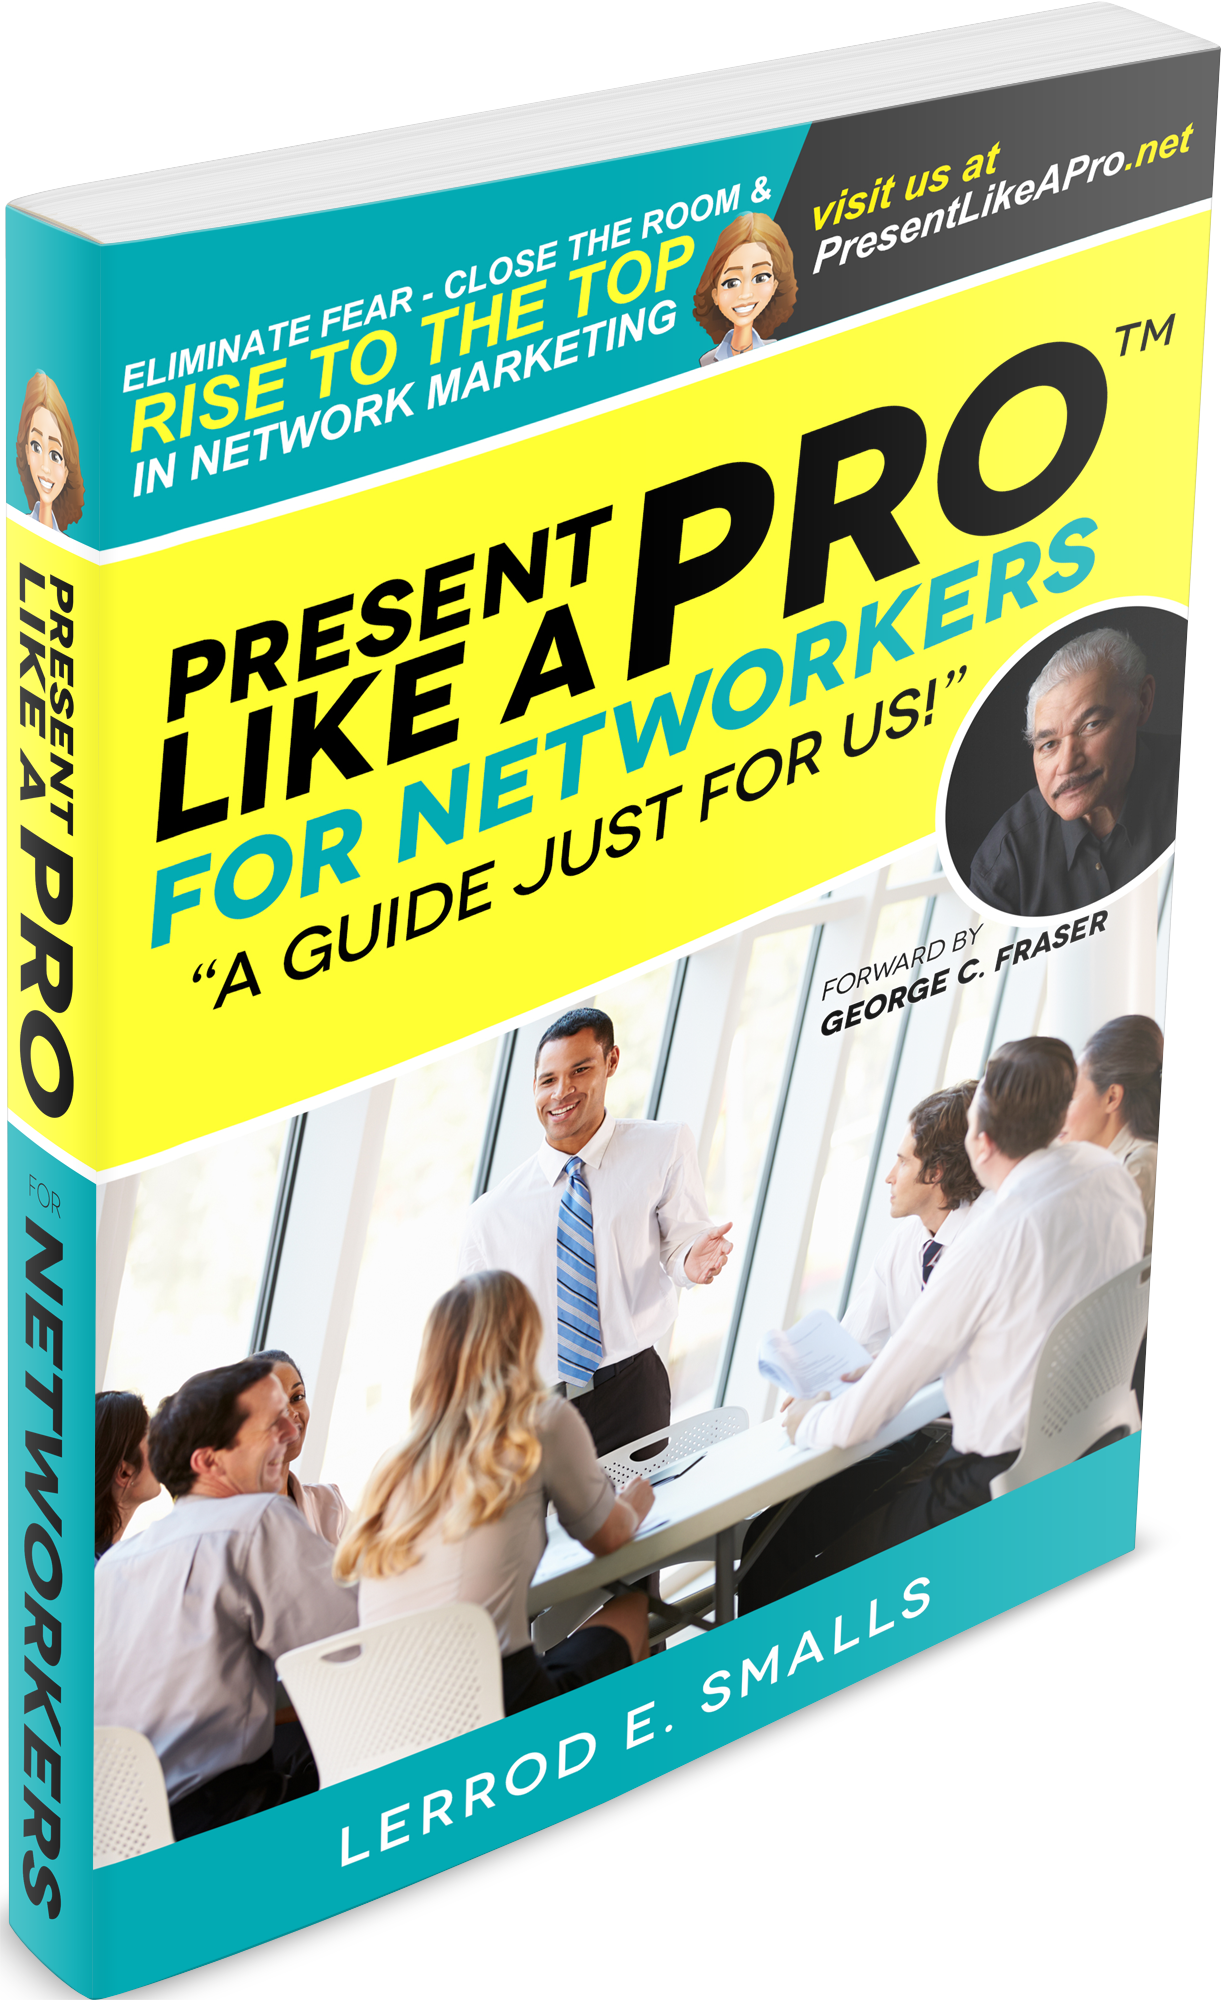 Present Like A Pro for Networkers: Eliminate Fear, Close the Room and Rise to the Top in Network Marketing Kindle Edition